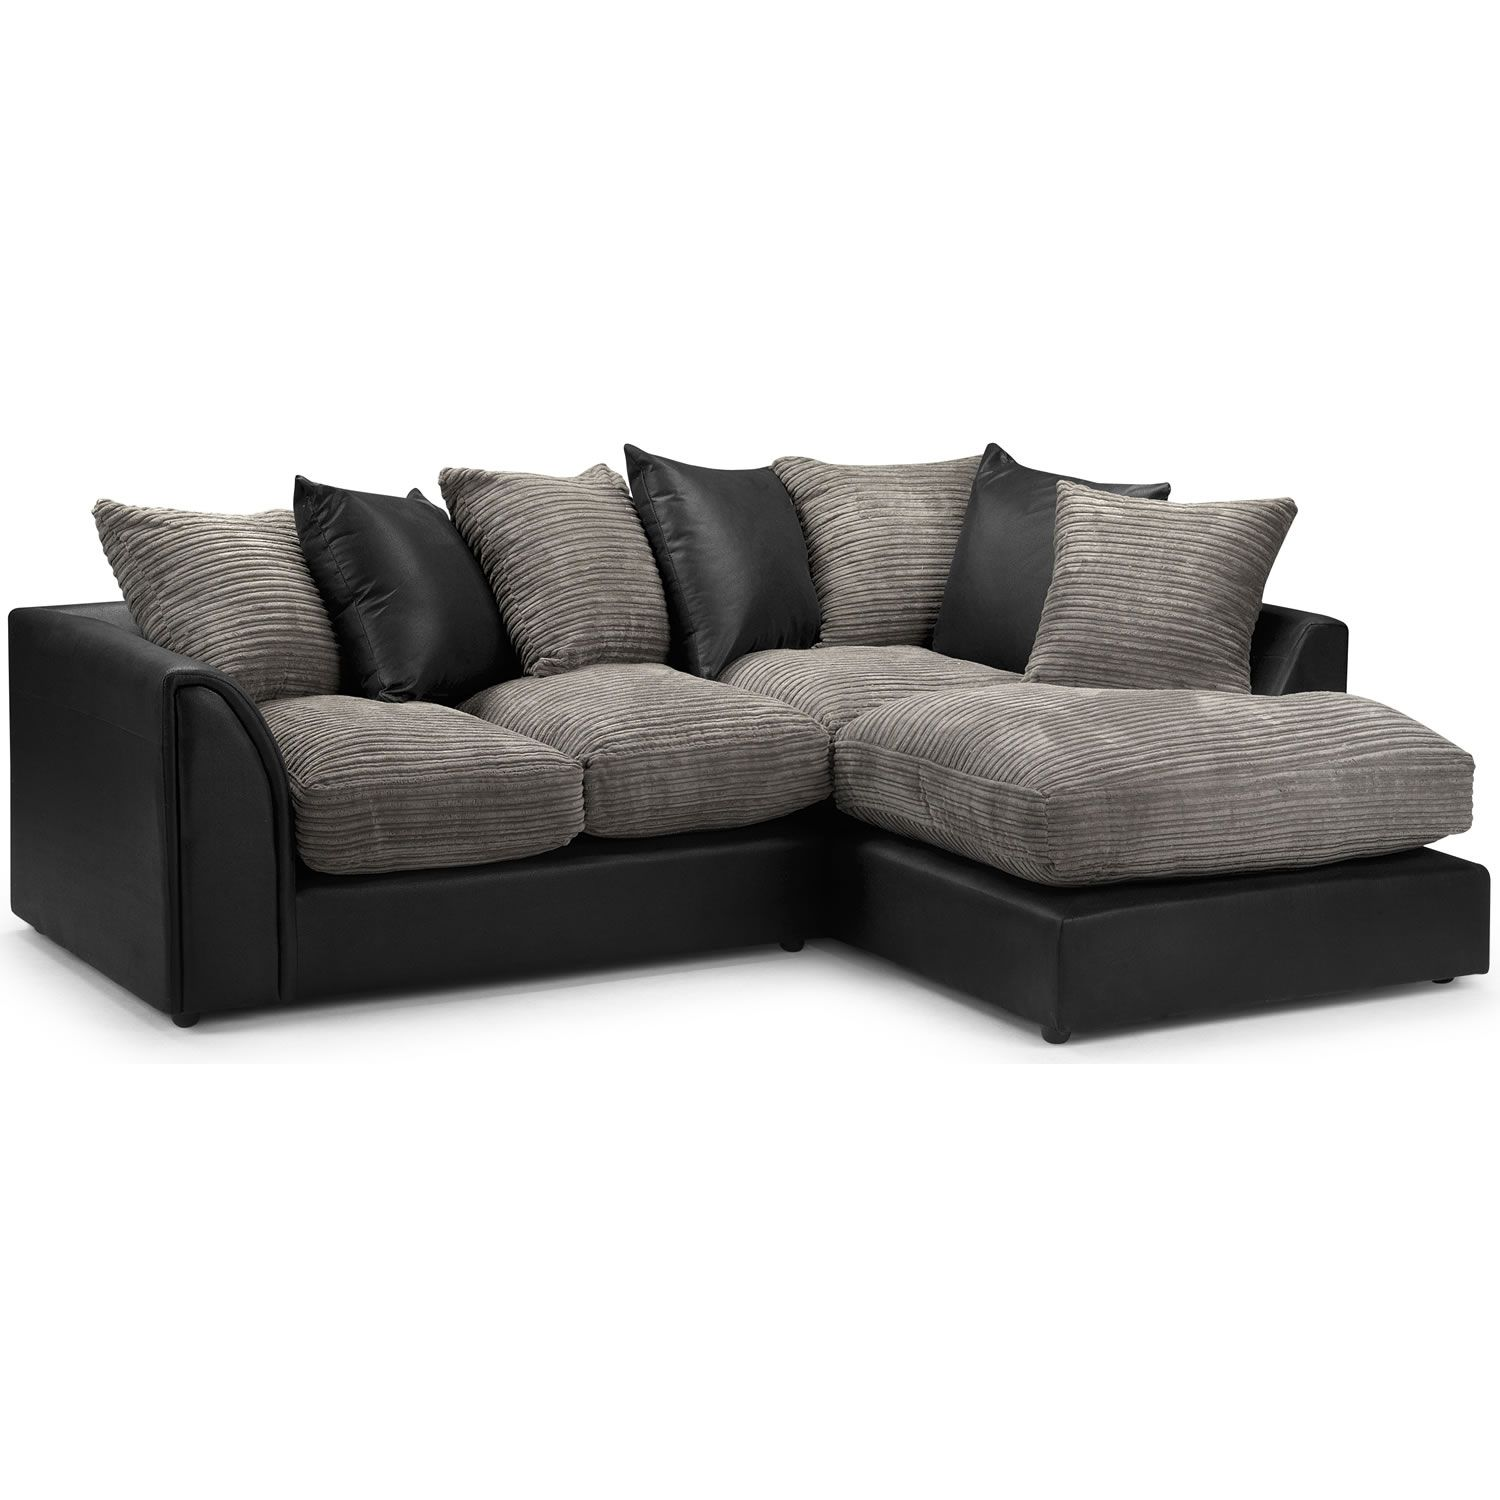 Byron Corner Sofa Only 449 99 On Sofasworld Co Uk Http